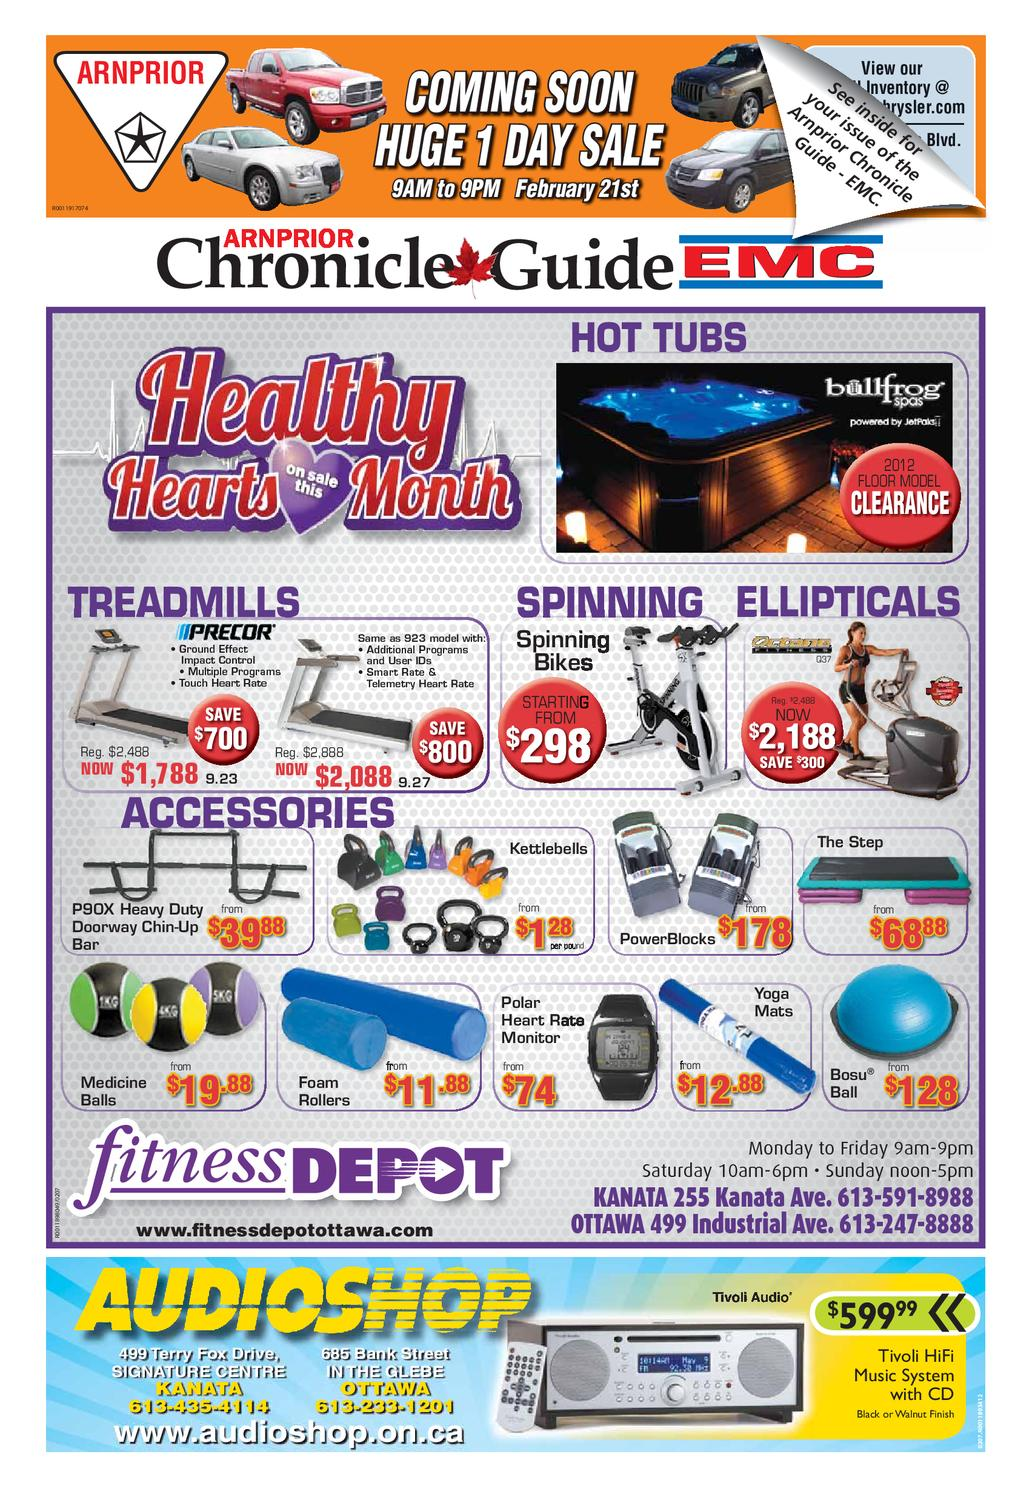 Arnprior Chronicle Guide Emc By Metroland East Arnprior Chronicle